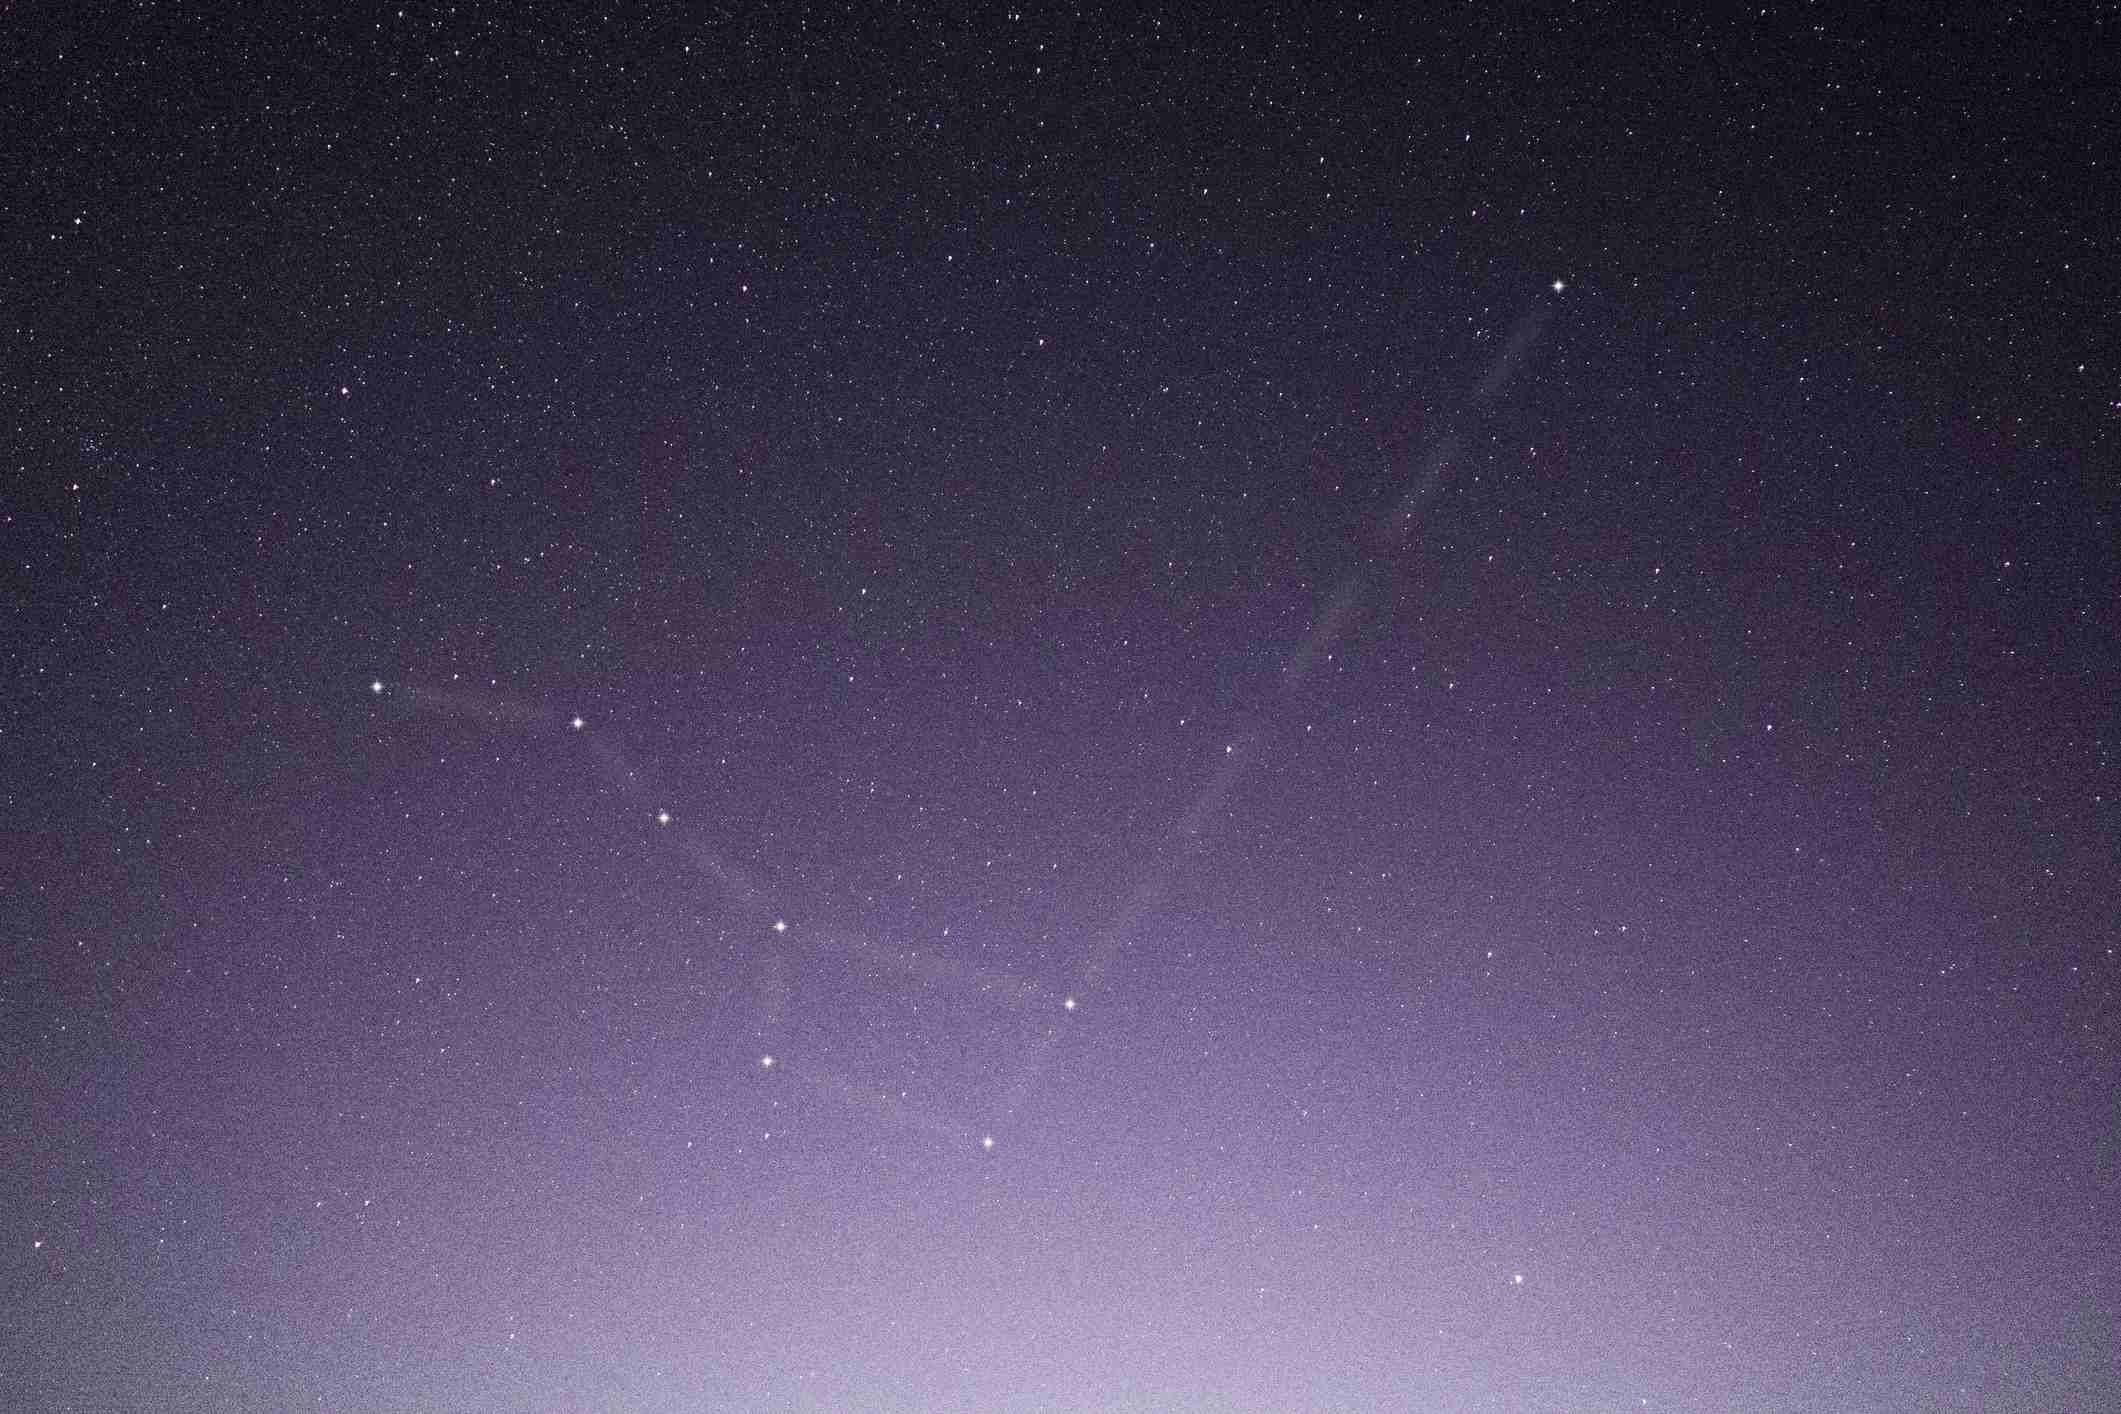 """The easiest way to find the constellation Cassiopeia is to look for a """"W"""" on the other side of the North Star from the Big Dipper."""